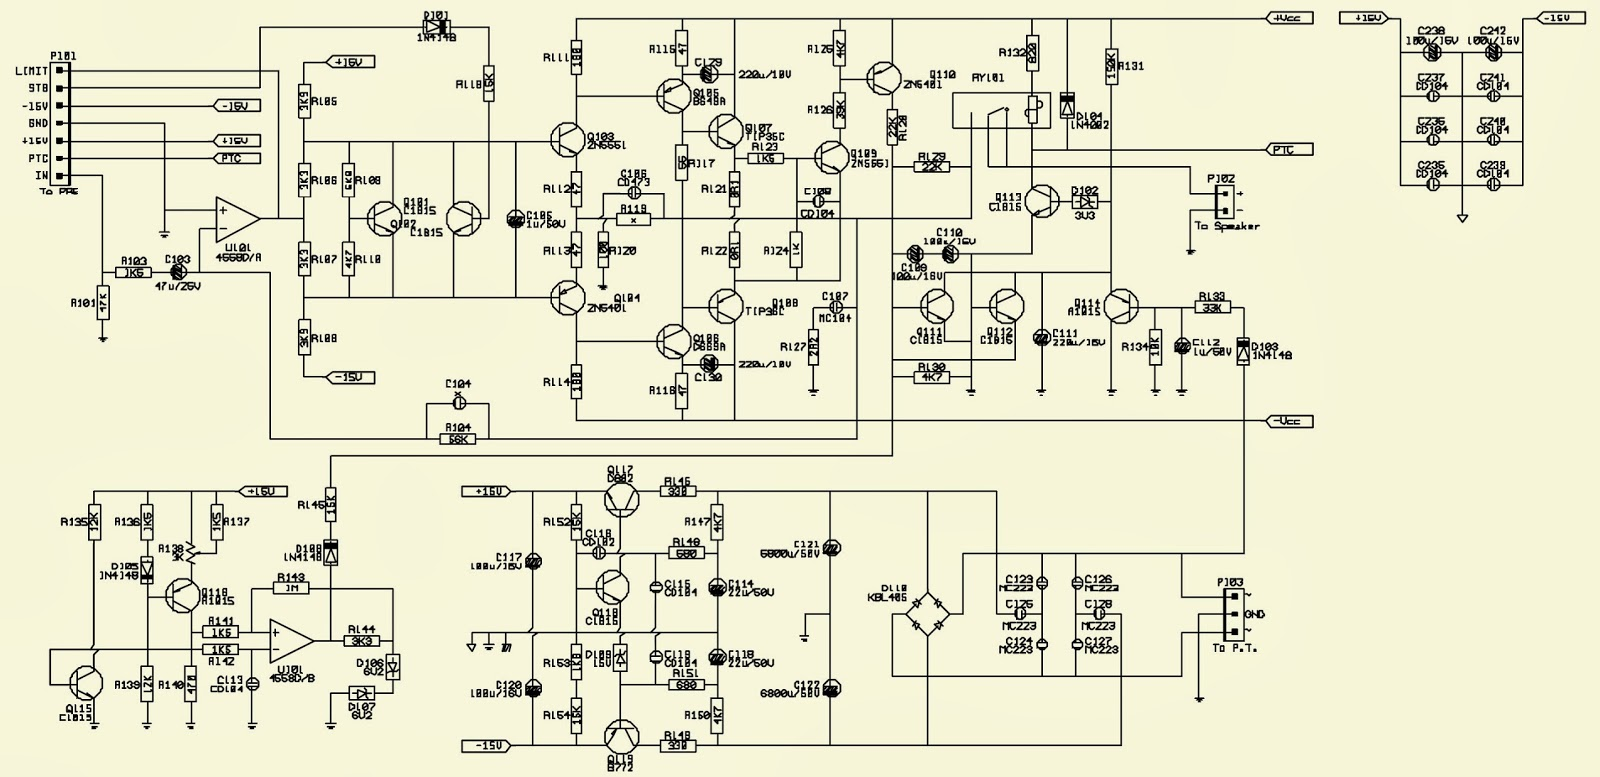 Diagram Jbl Sub 135s Cinema Propack 600 And Amp Subwoofer Part 1 Alpine Mrp F250 4 Channel Wiring Schematic Circuit Electro Help